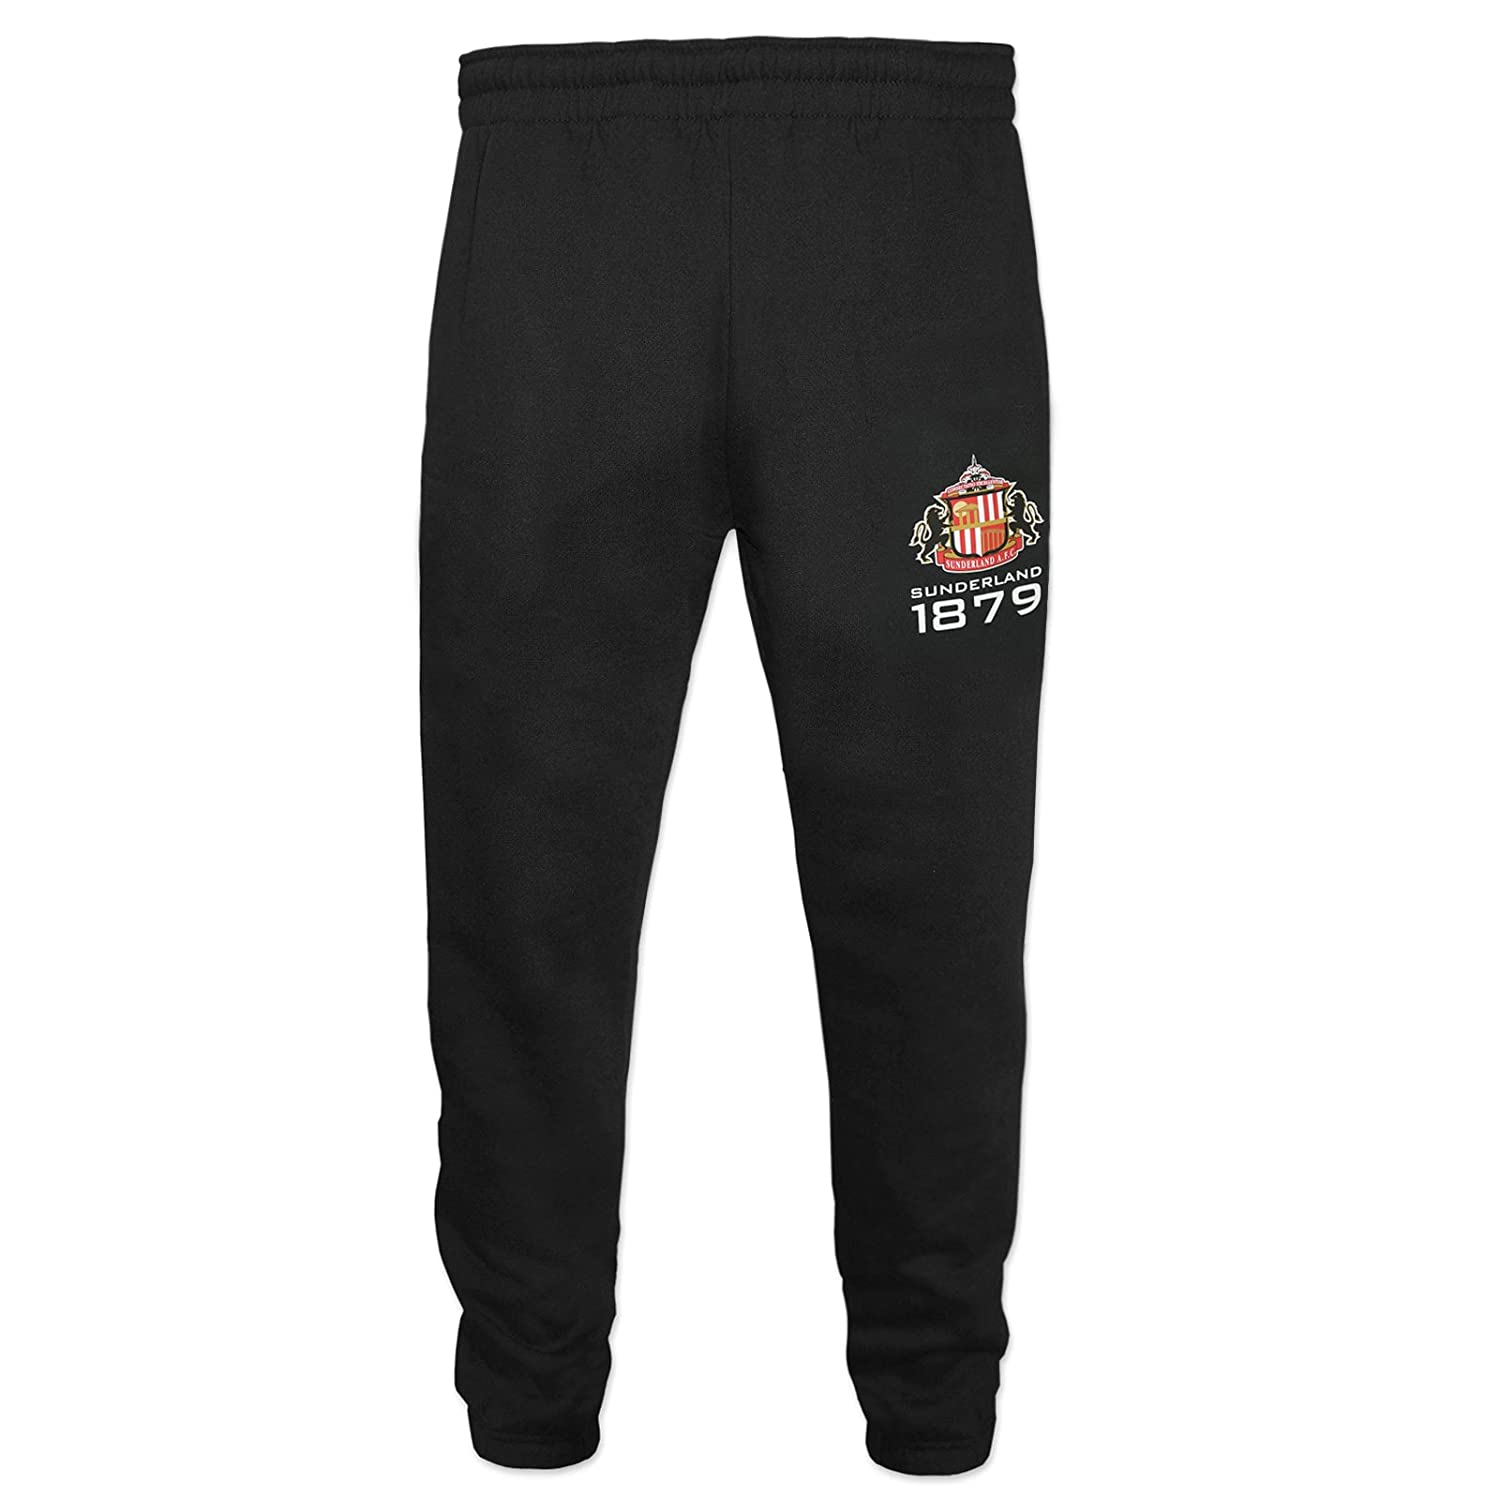 Sunderland AFC Official Gift Boys Slim Fit Fleece Joggers Jog Pants